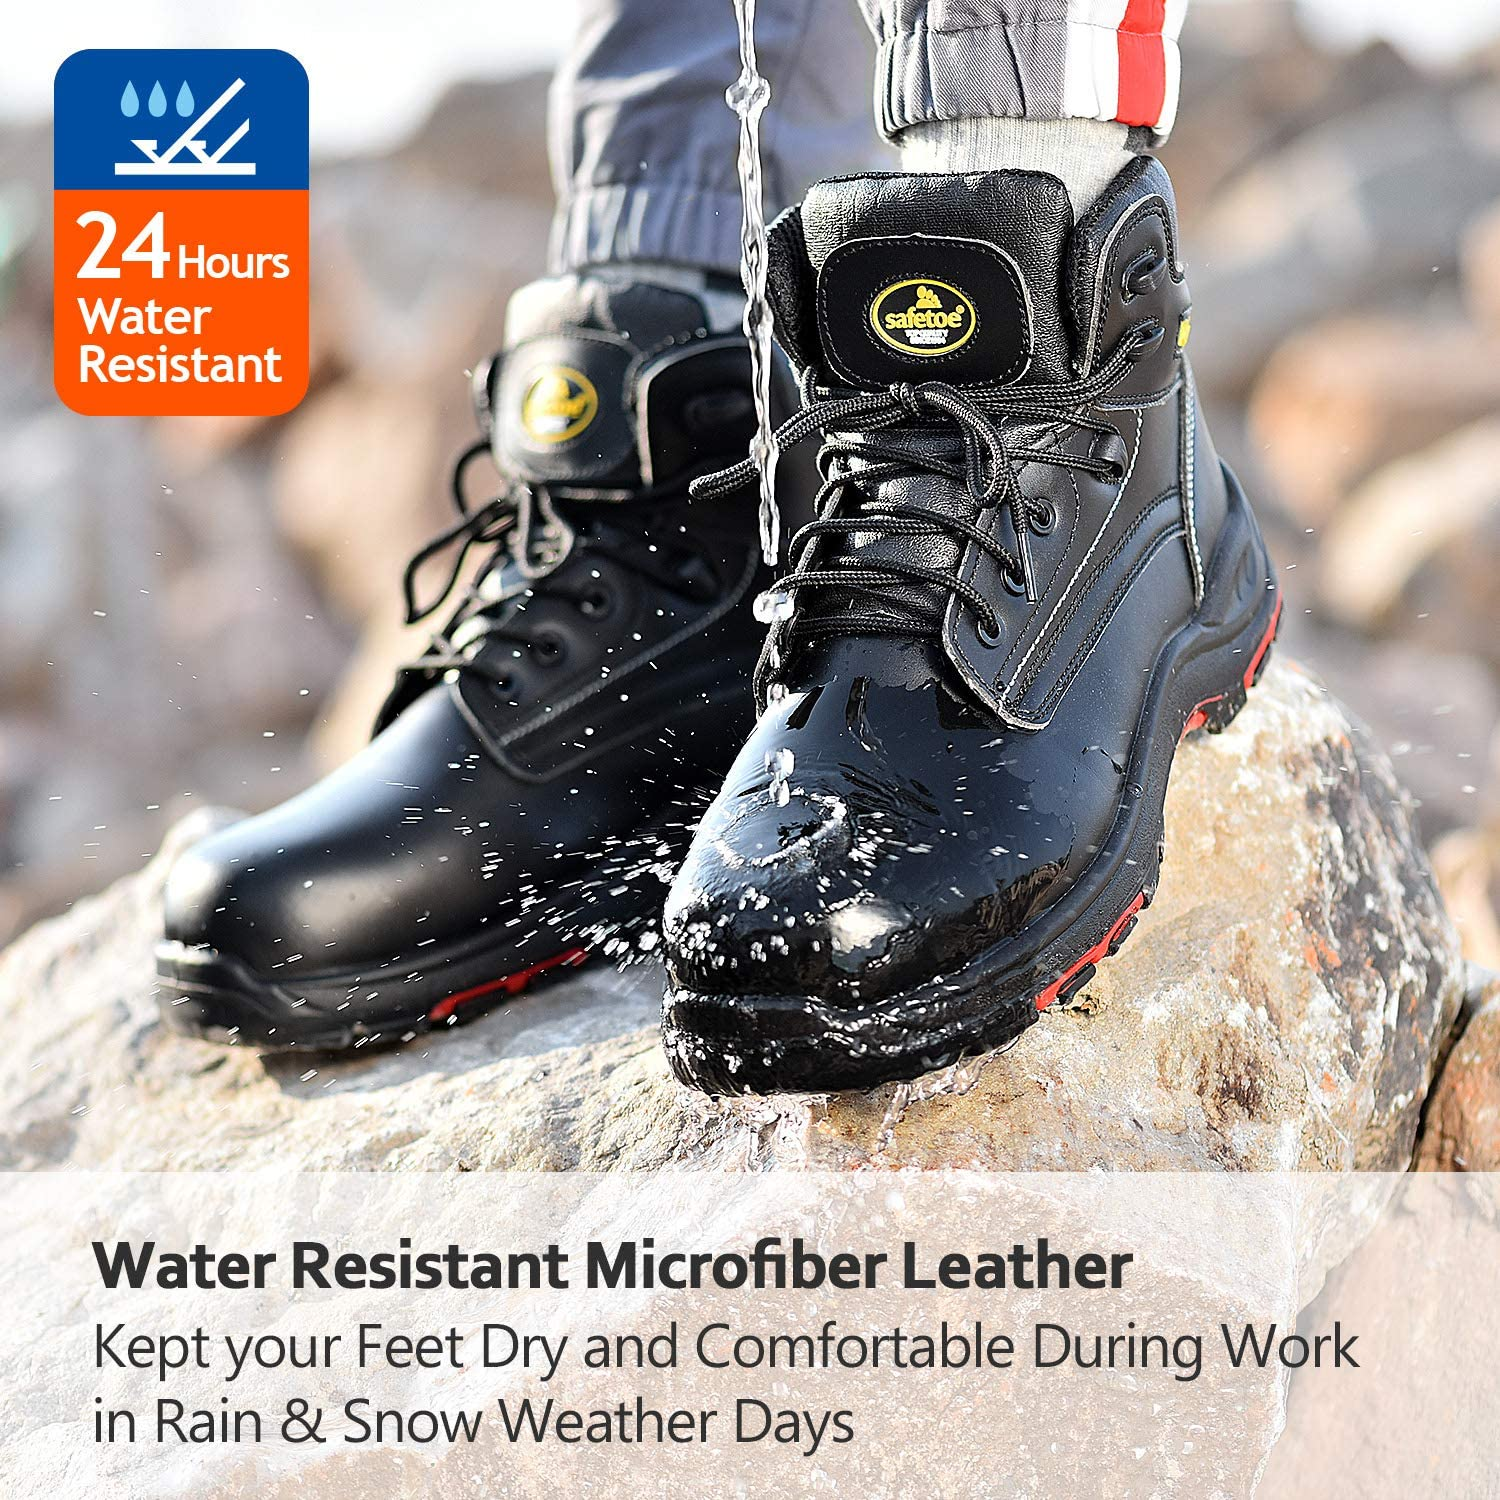 SAFETOE Work Safety Boots for Men /& Women,Black Waterproof Composite Toe Work Boots Insulated Work Safety Shoes for Industrial Construction